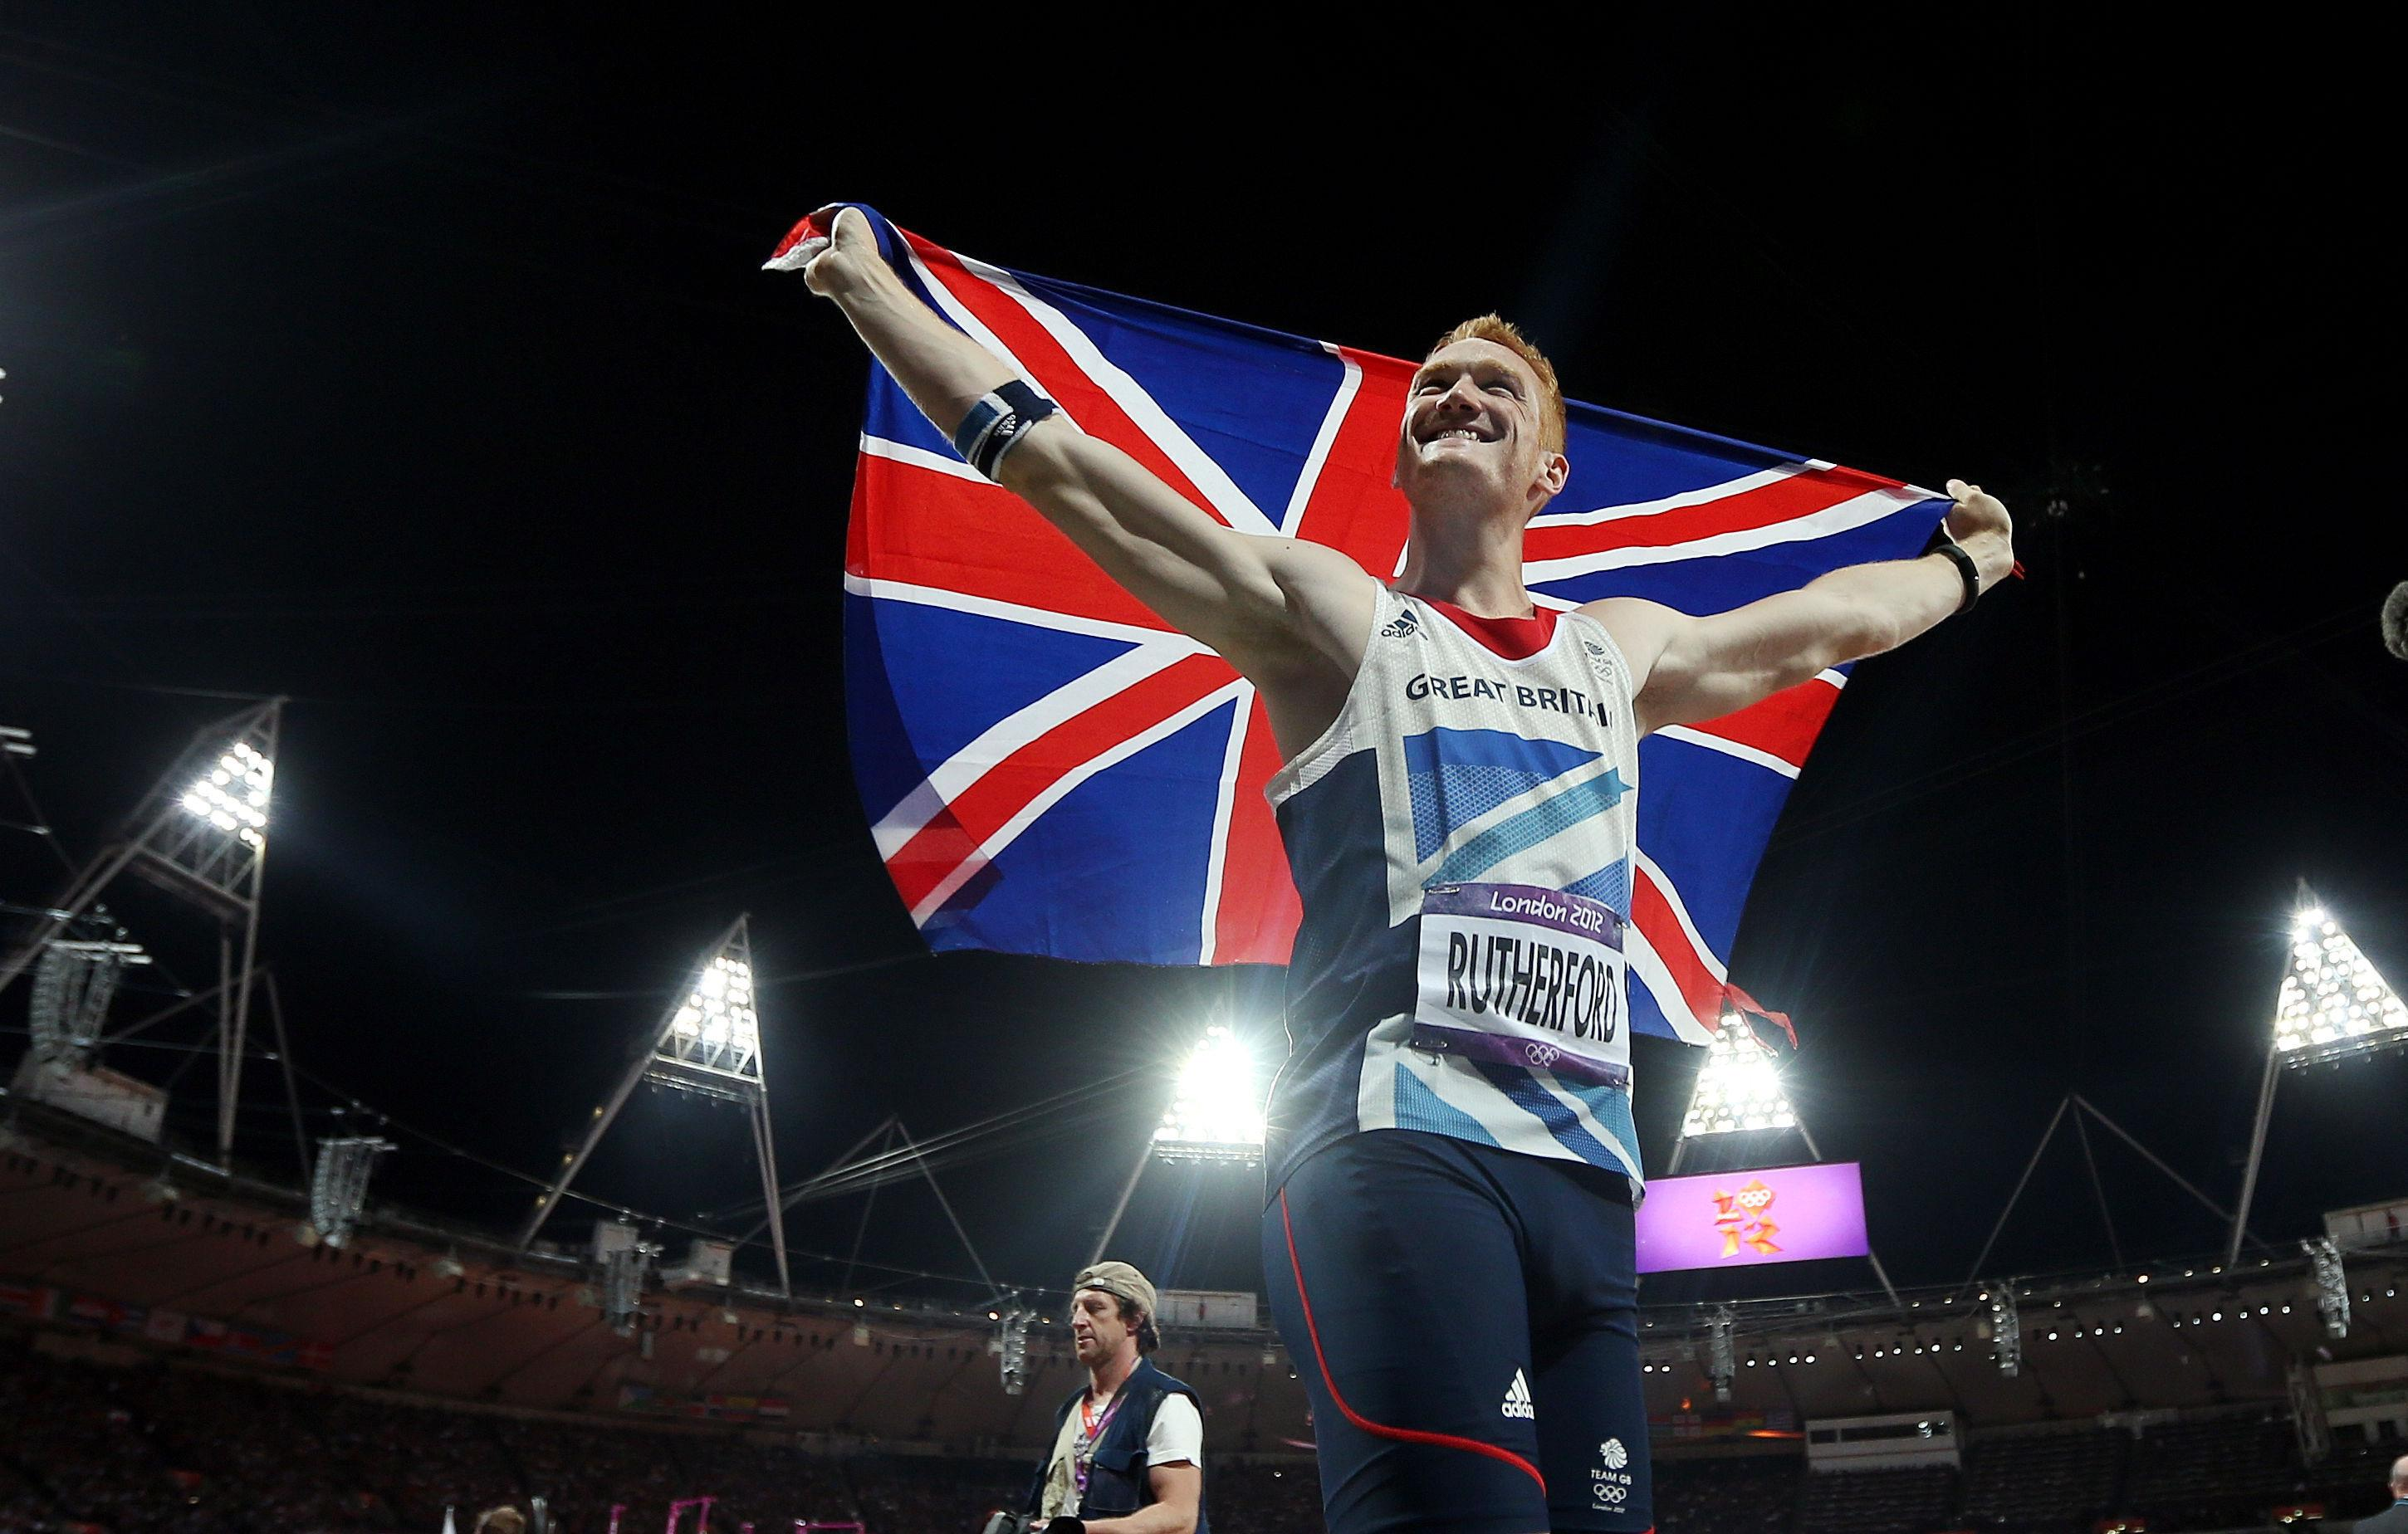 Greg took the gold medal at London 2012